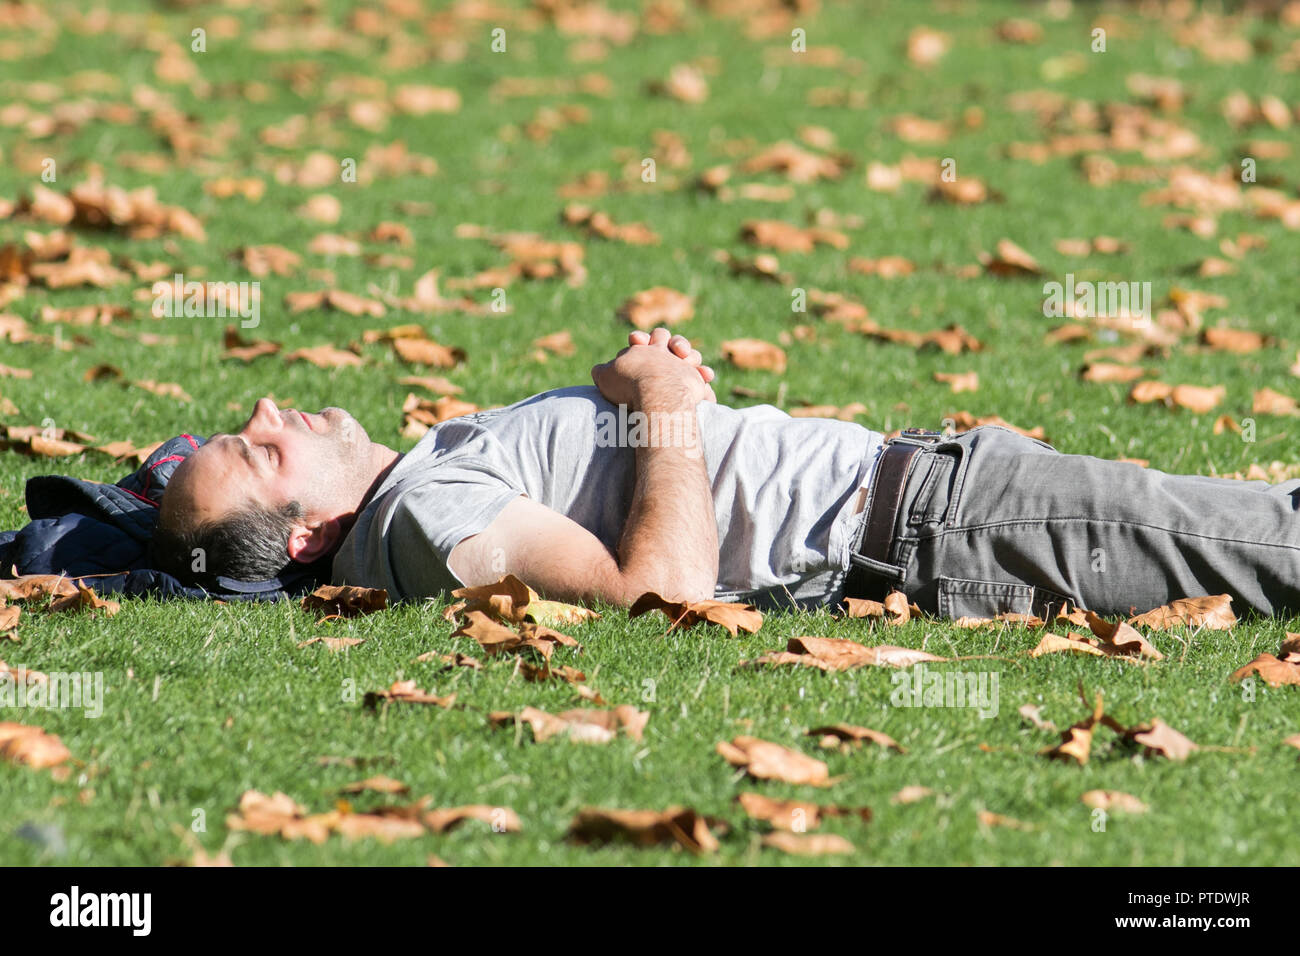 London UK. 9th Ocrober 2018. People snoozing and sunbathing in the afternoon  sunshine in Saint James's Park covered in fallen leaves on a warm autumn day as October is forecast to be the hottest month in Seven years as the Indian summer returns Credit: amer ghazzal/Alamy Live News - Stock Image